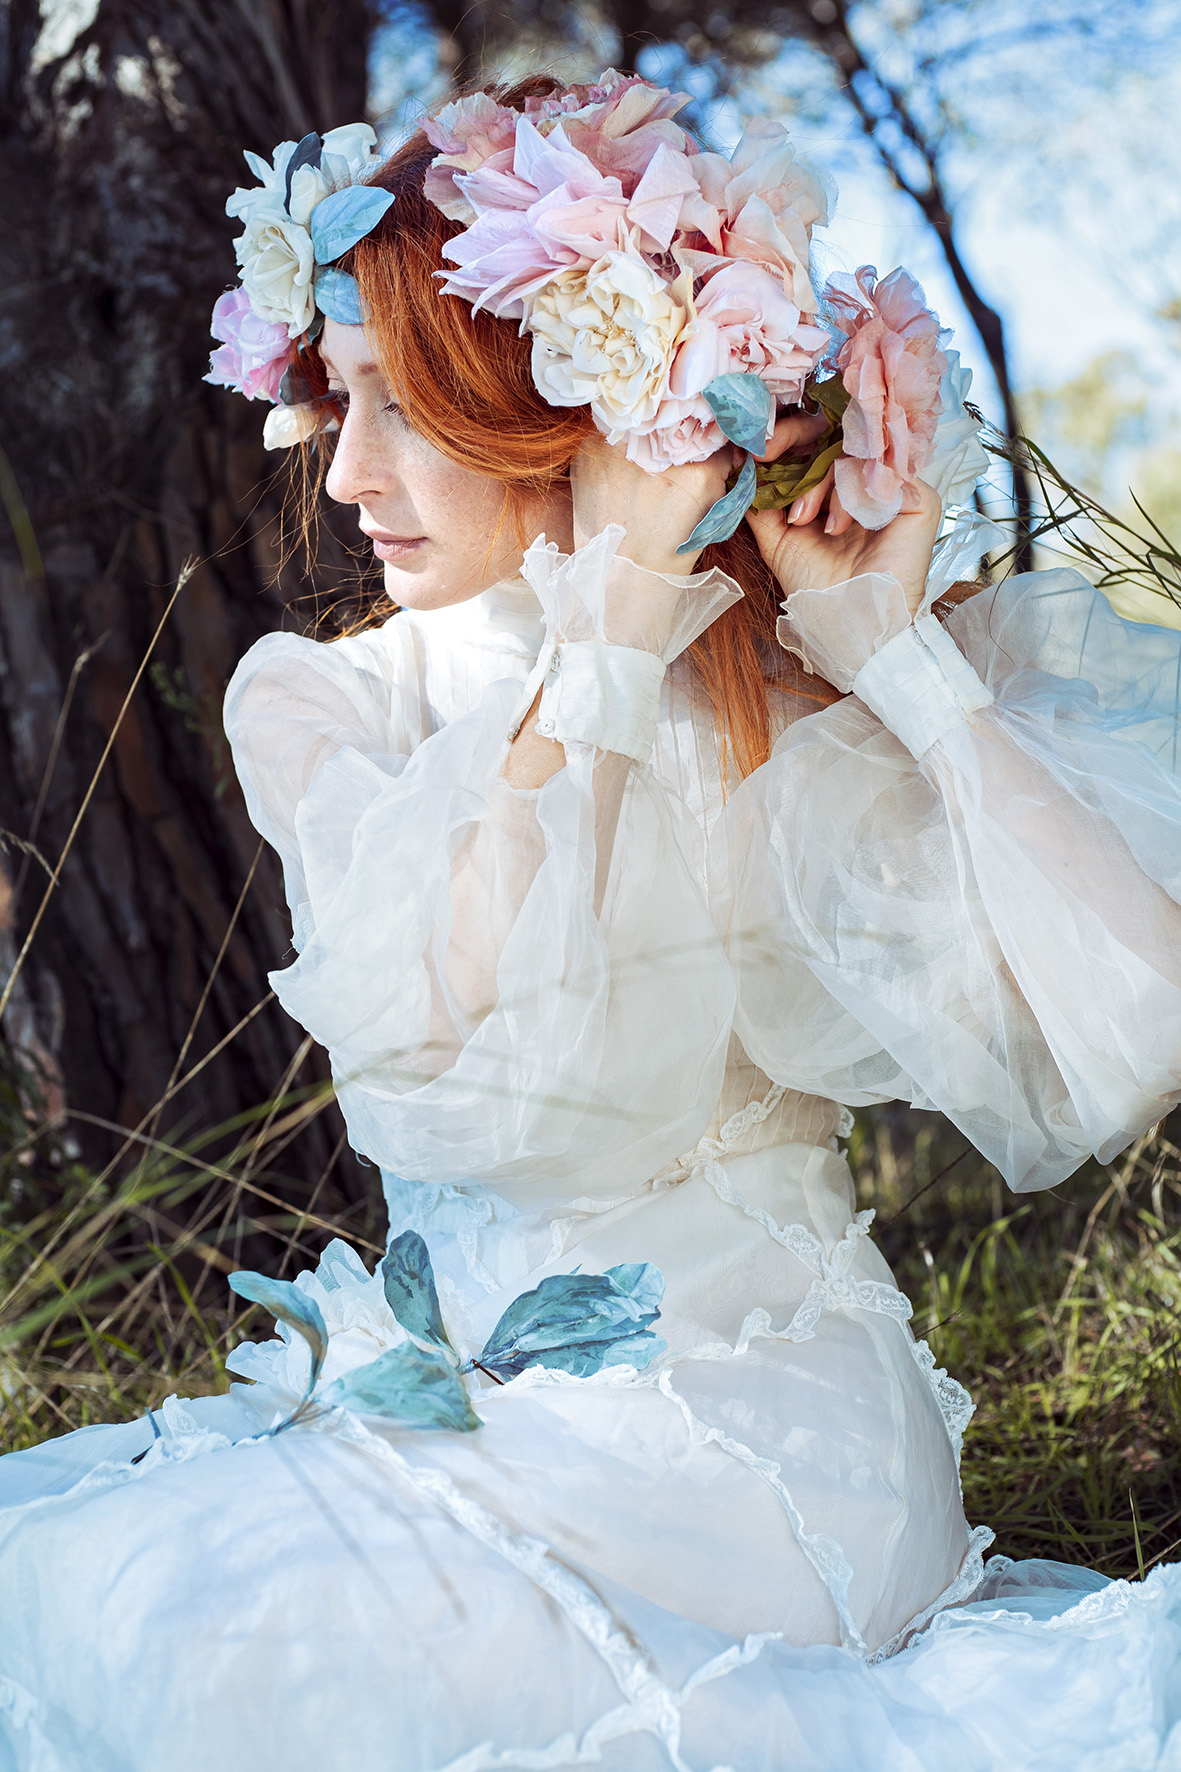 Model boho style in the nature flowers bride